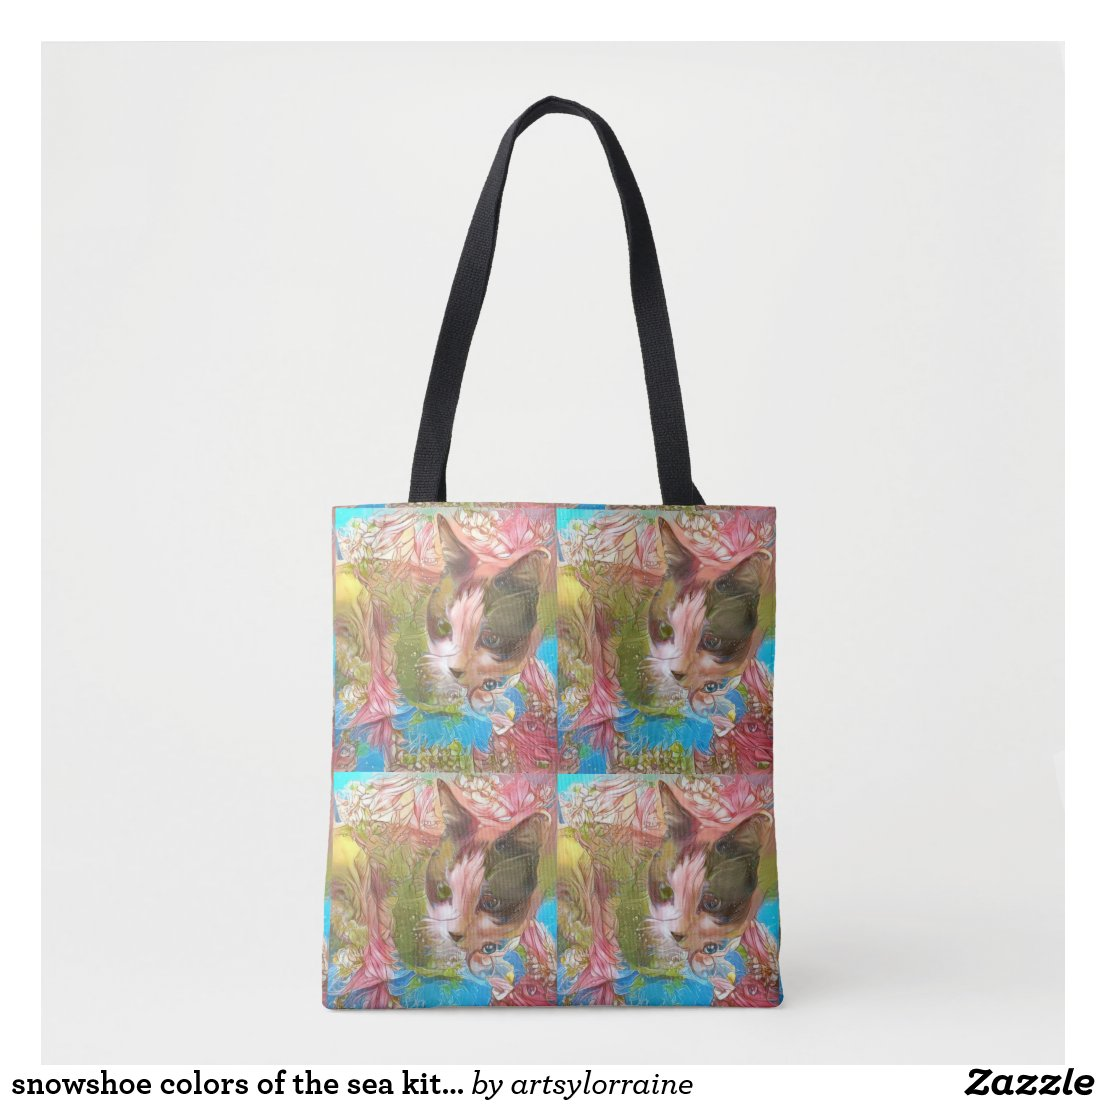 snowshoe colors of the sea kitty tote bag